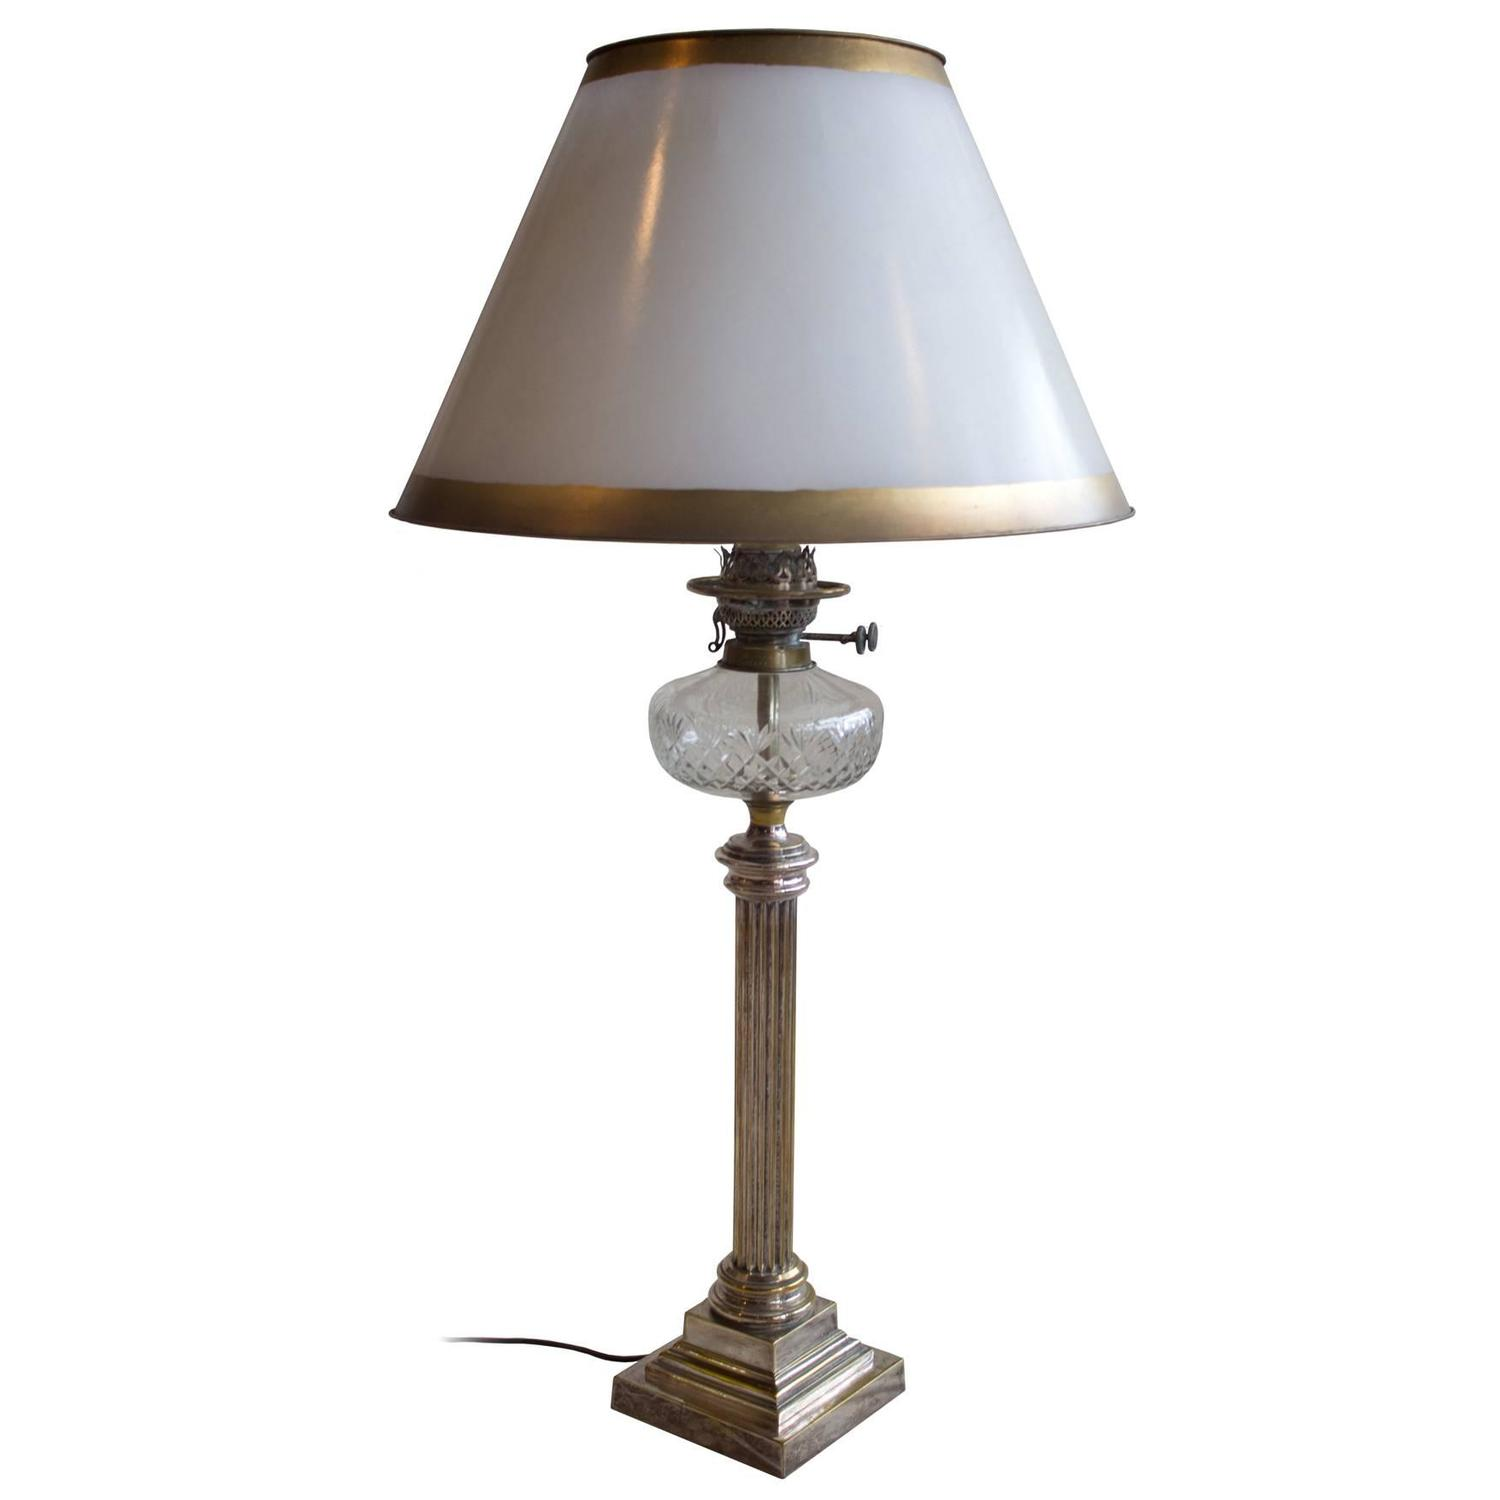 english victorian banquet lamp for sale at 1stdibs. Black Bedroom Furniture Sets. Home Design Ideas